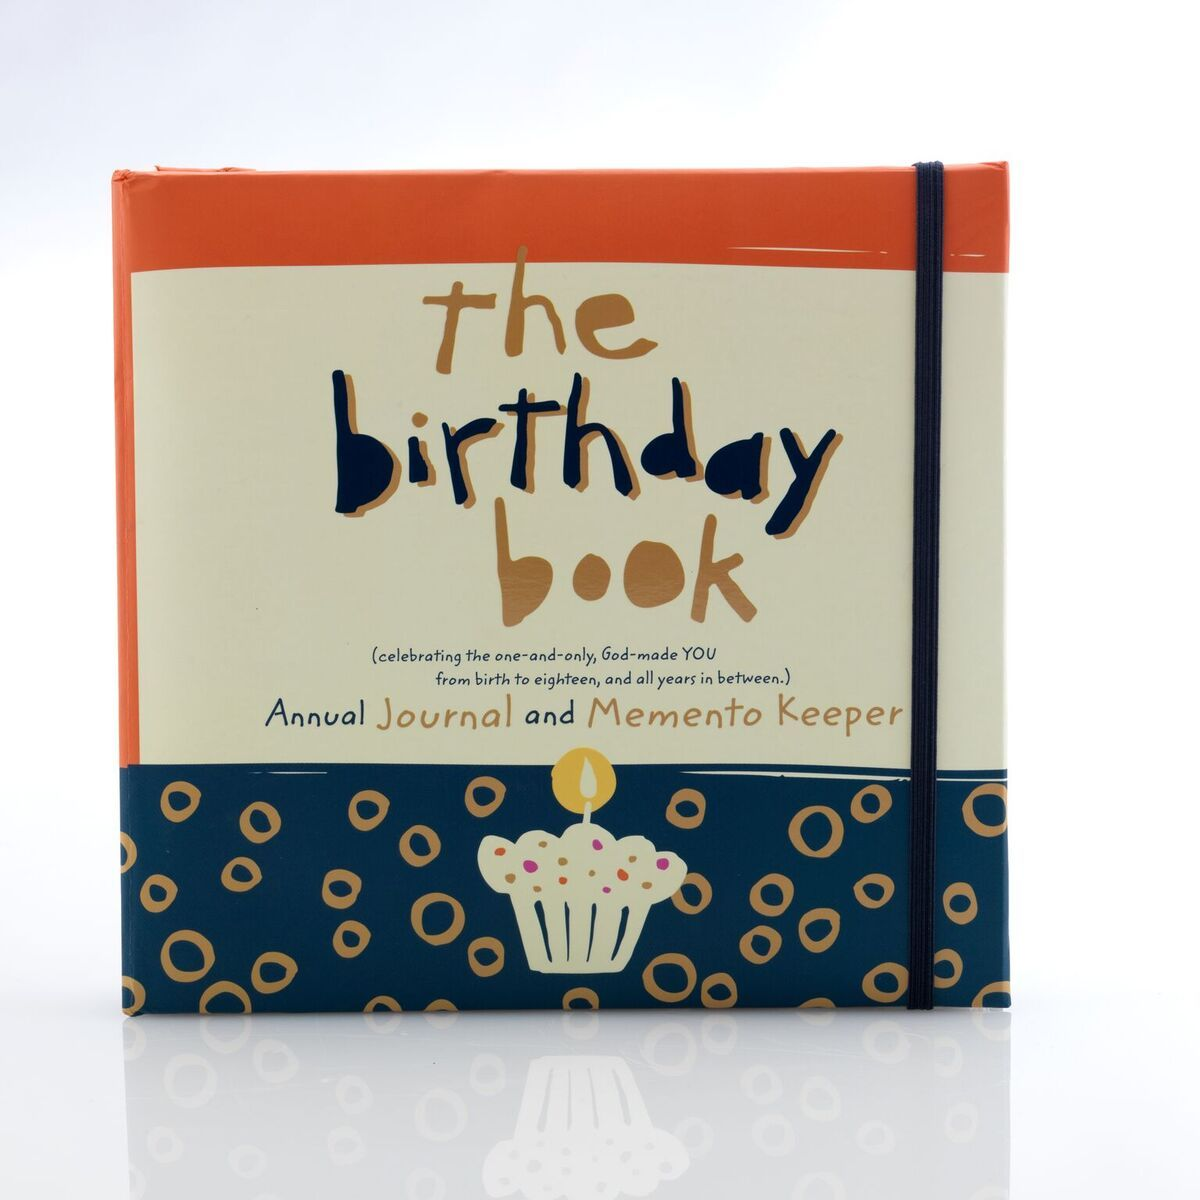 The Birthday Book Journal | $26. From Birth to 18 Years.